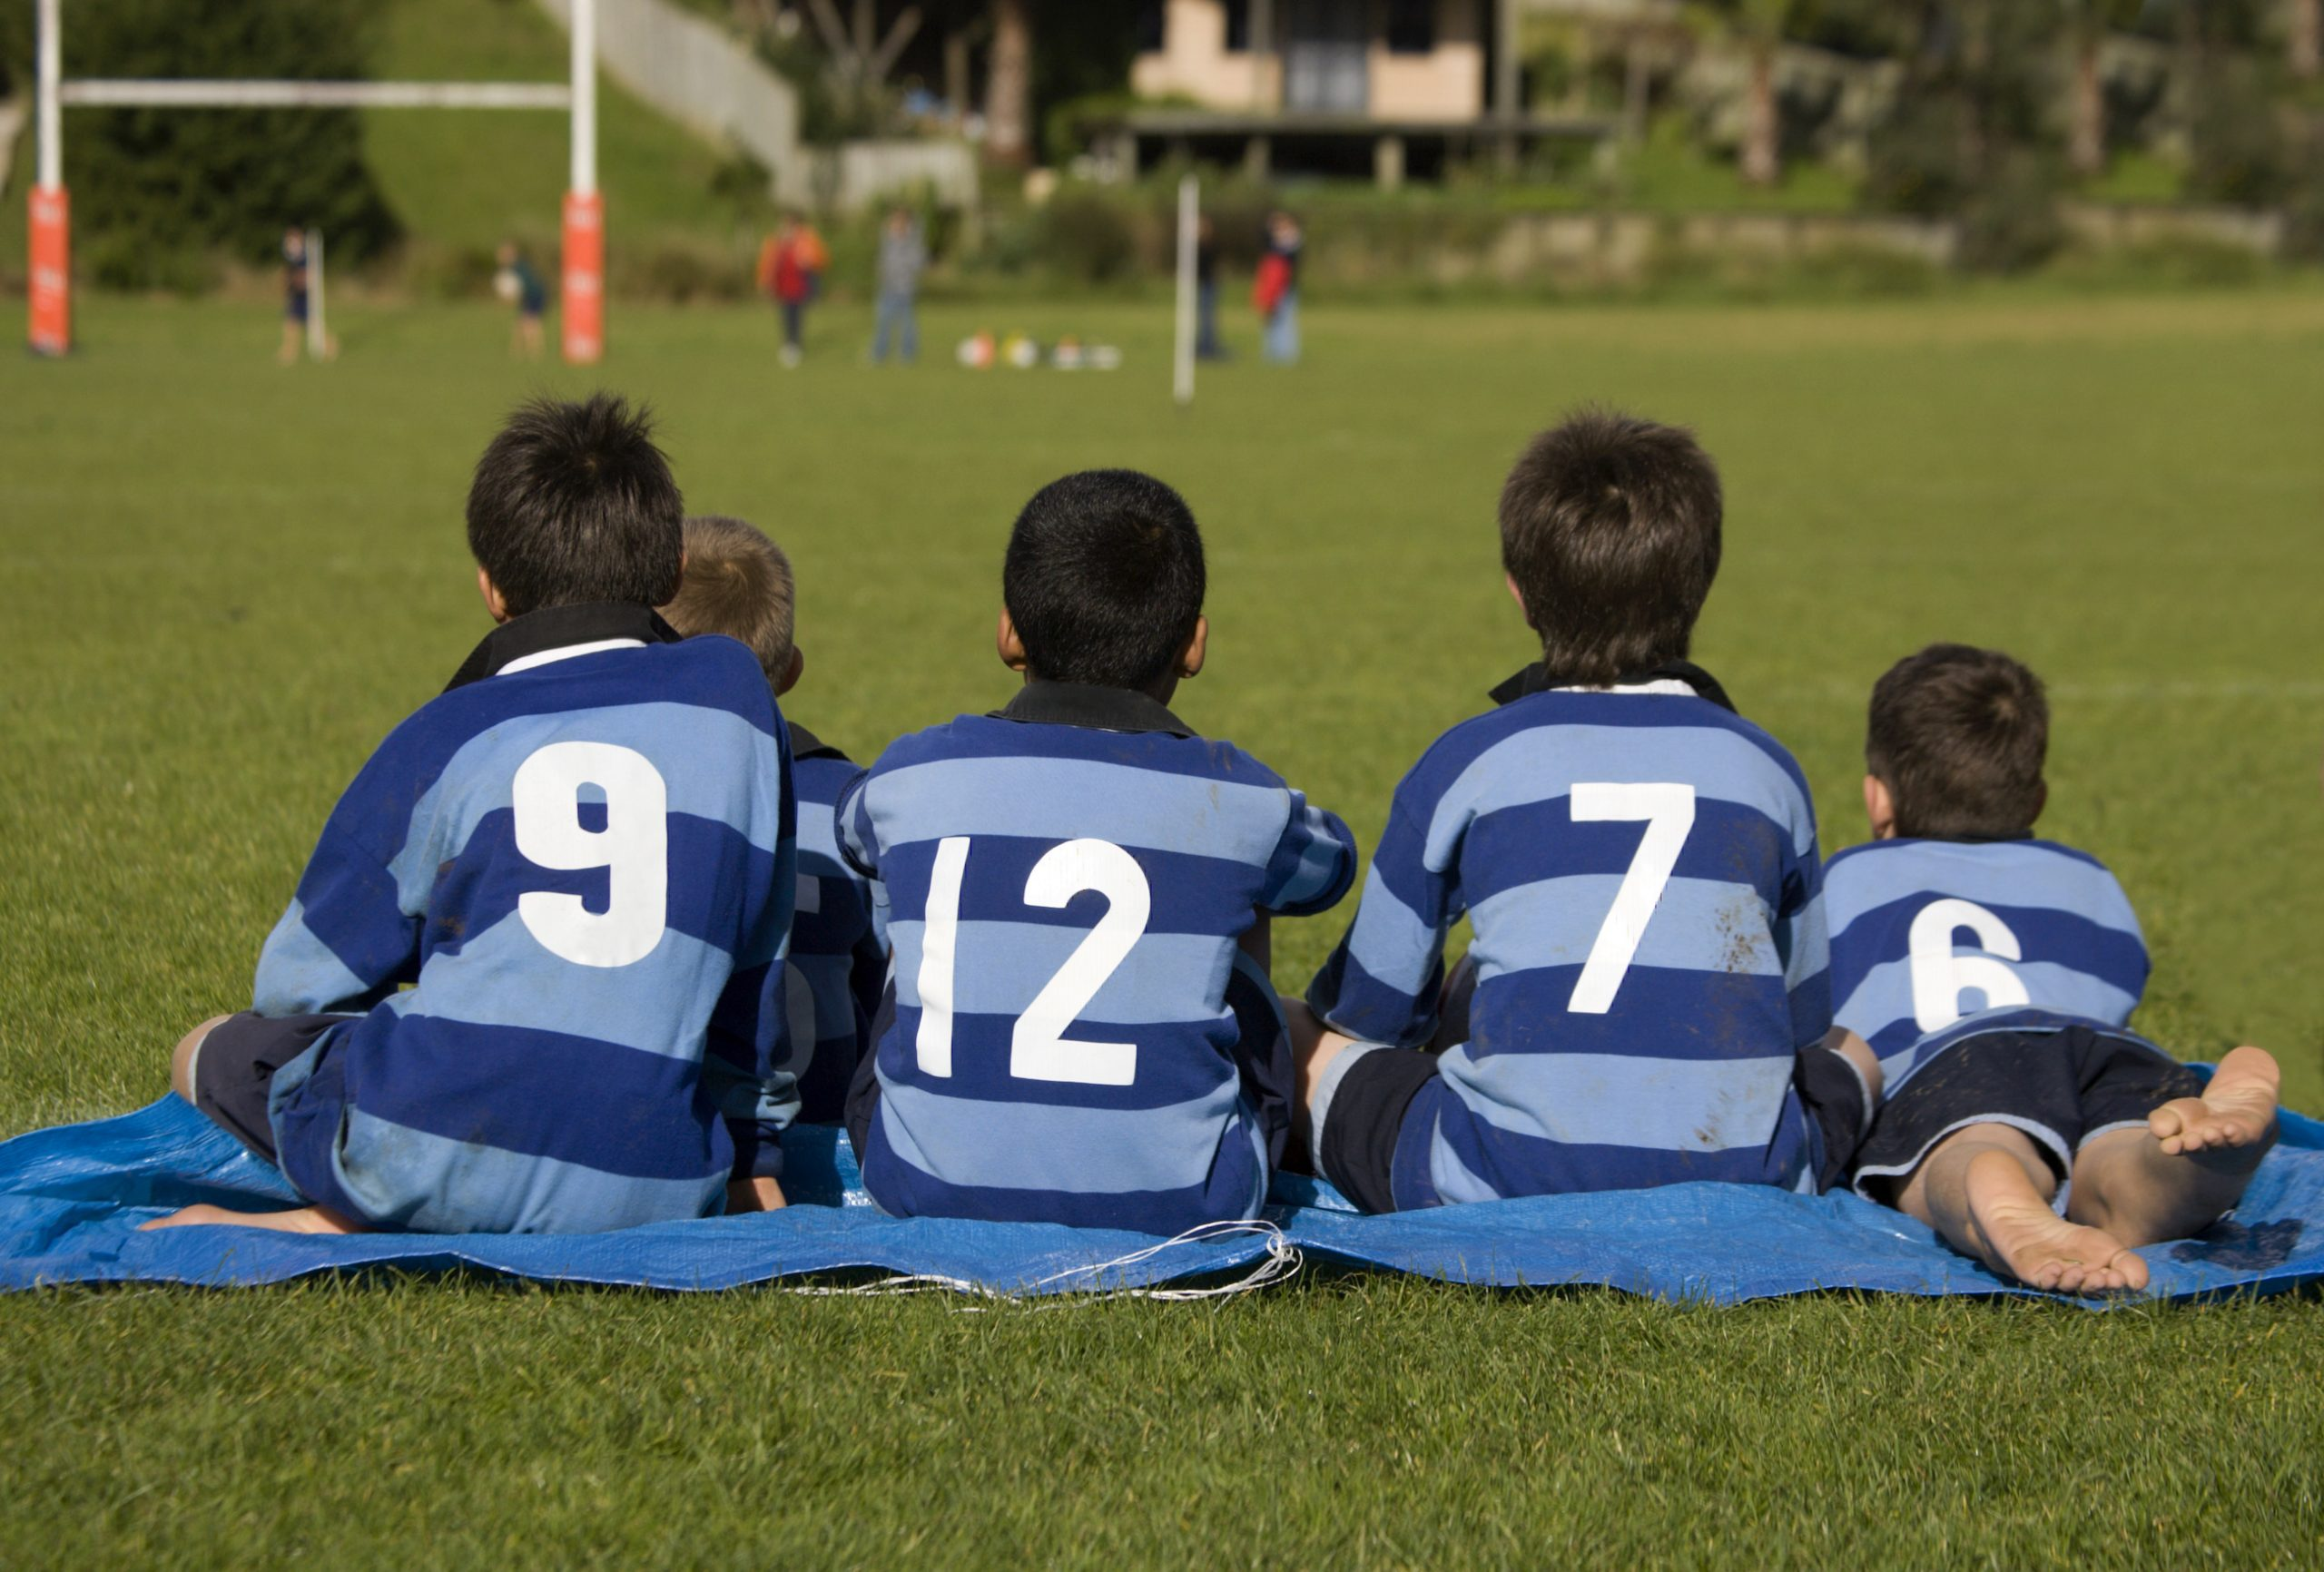 School sport given high priority in England